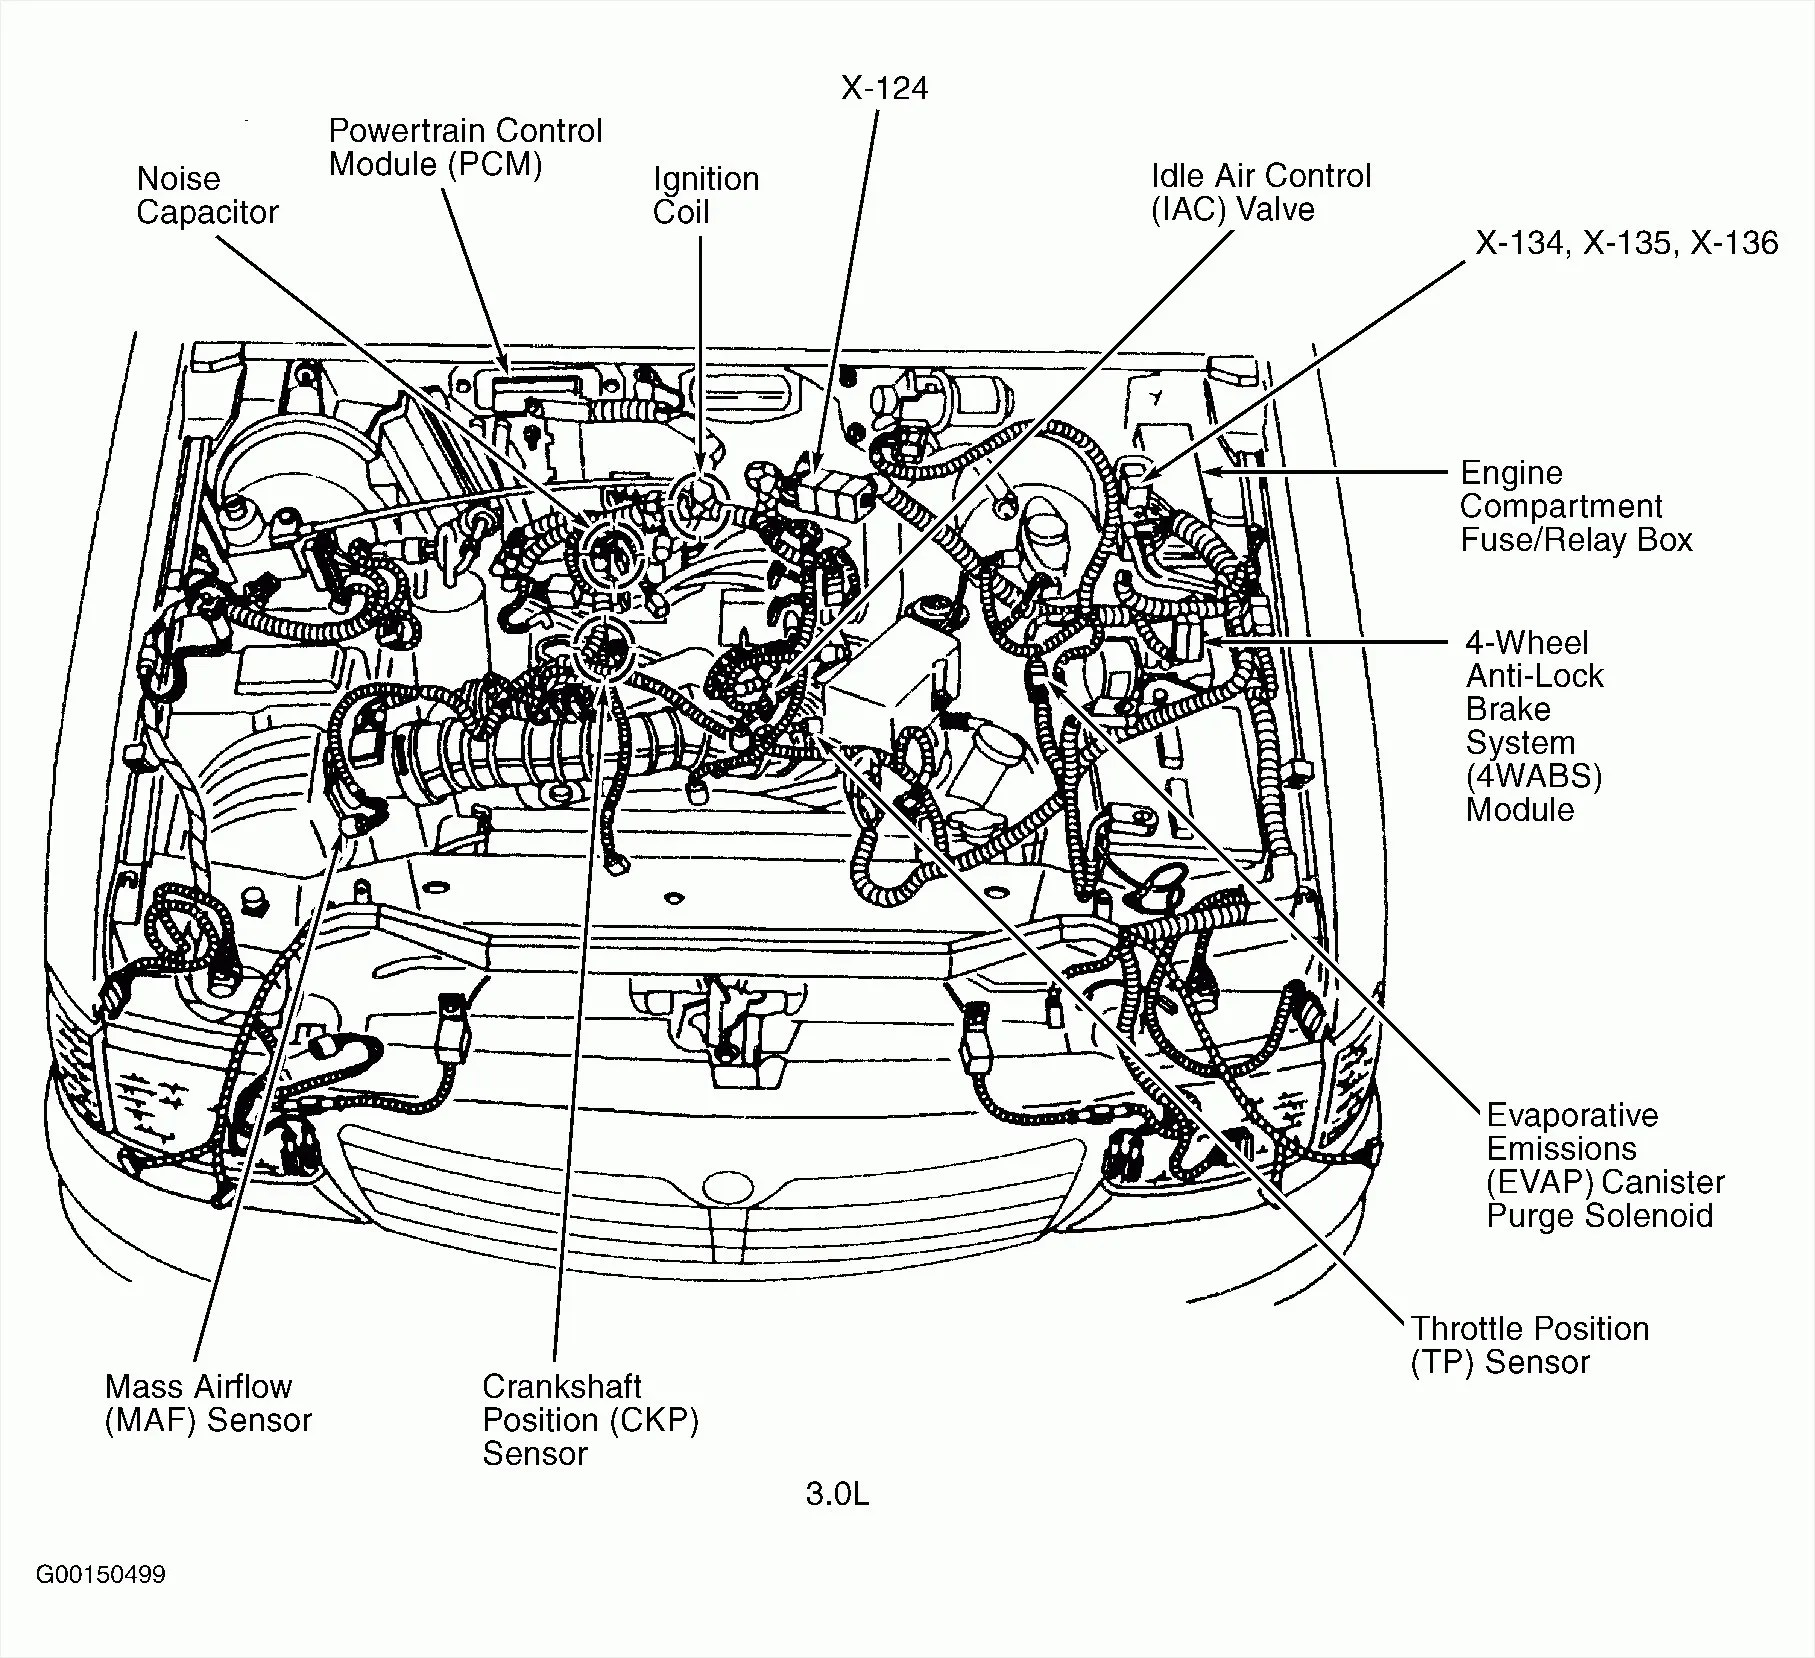 hight resolution of 2000 chevy malibu vacuum hose diagram in addition 2002 chevy tracker 2002 chevy tracker engine diagram